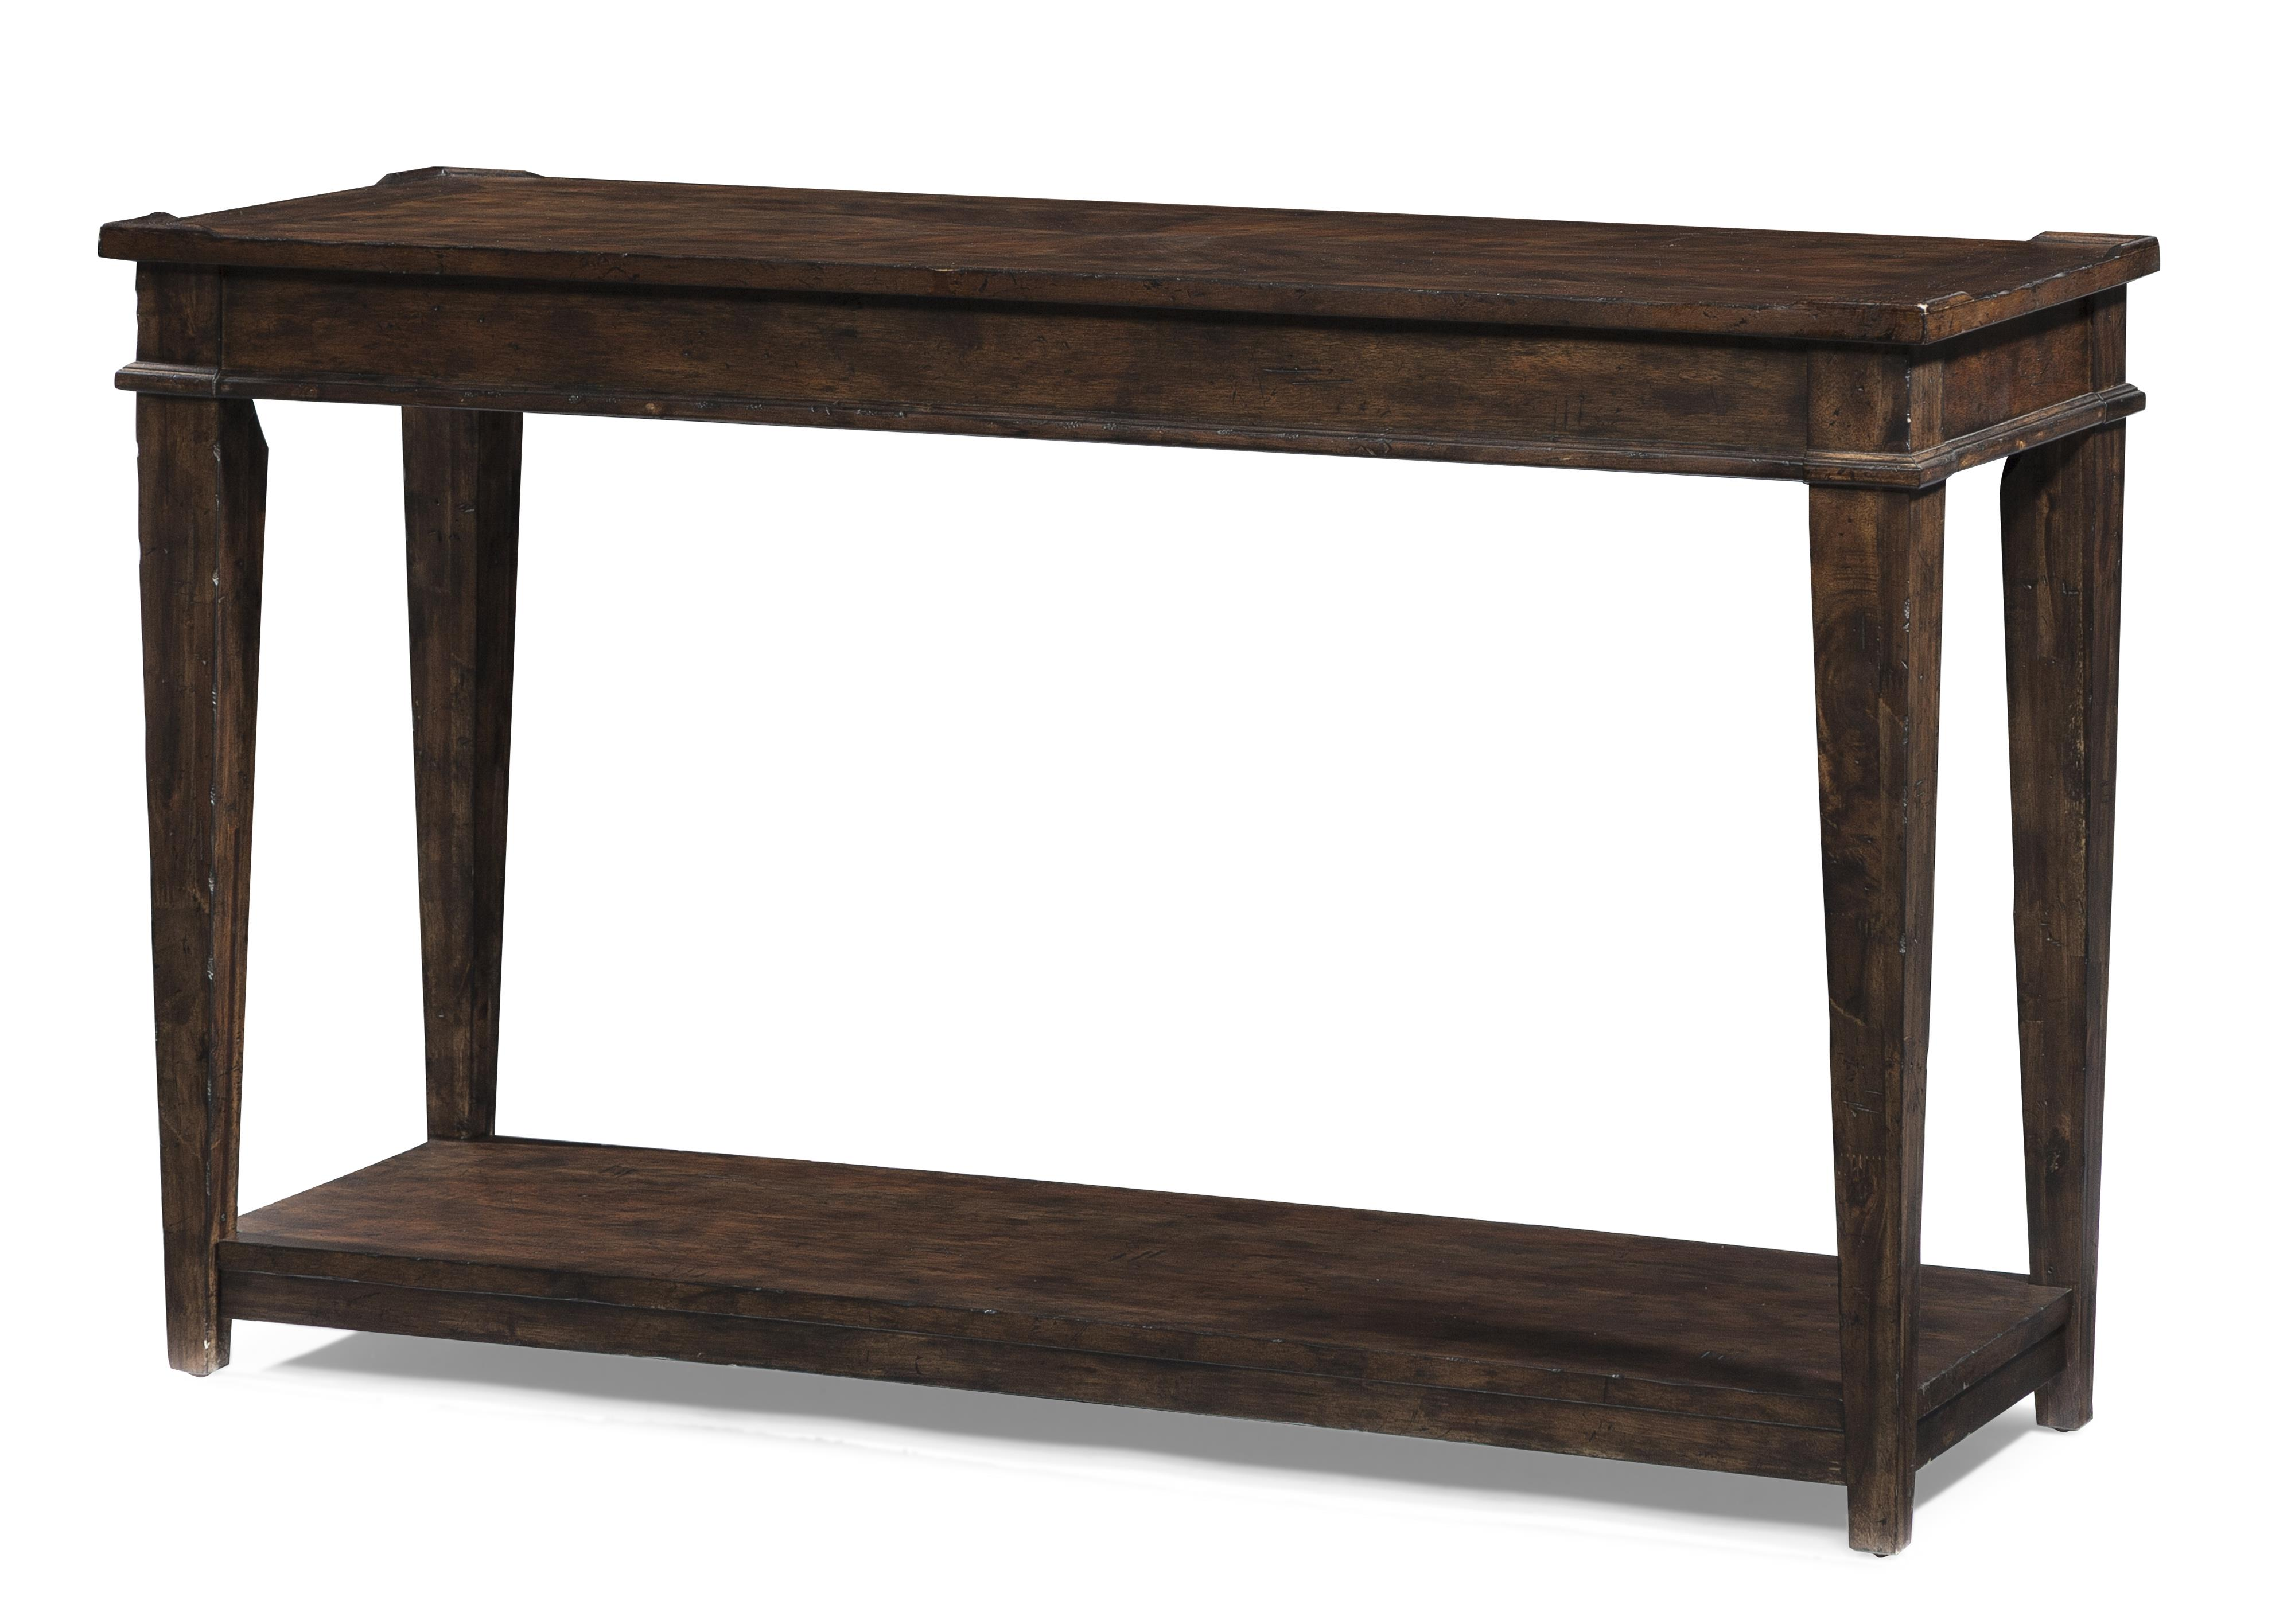 Trisha Yearwood Home Sofa Table by Trisha Yearwood Home Collection by Klaussner at Lagniappe Home Store